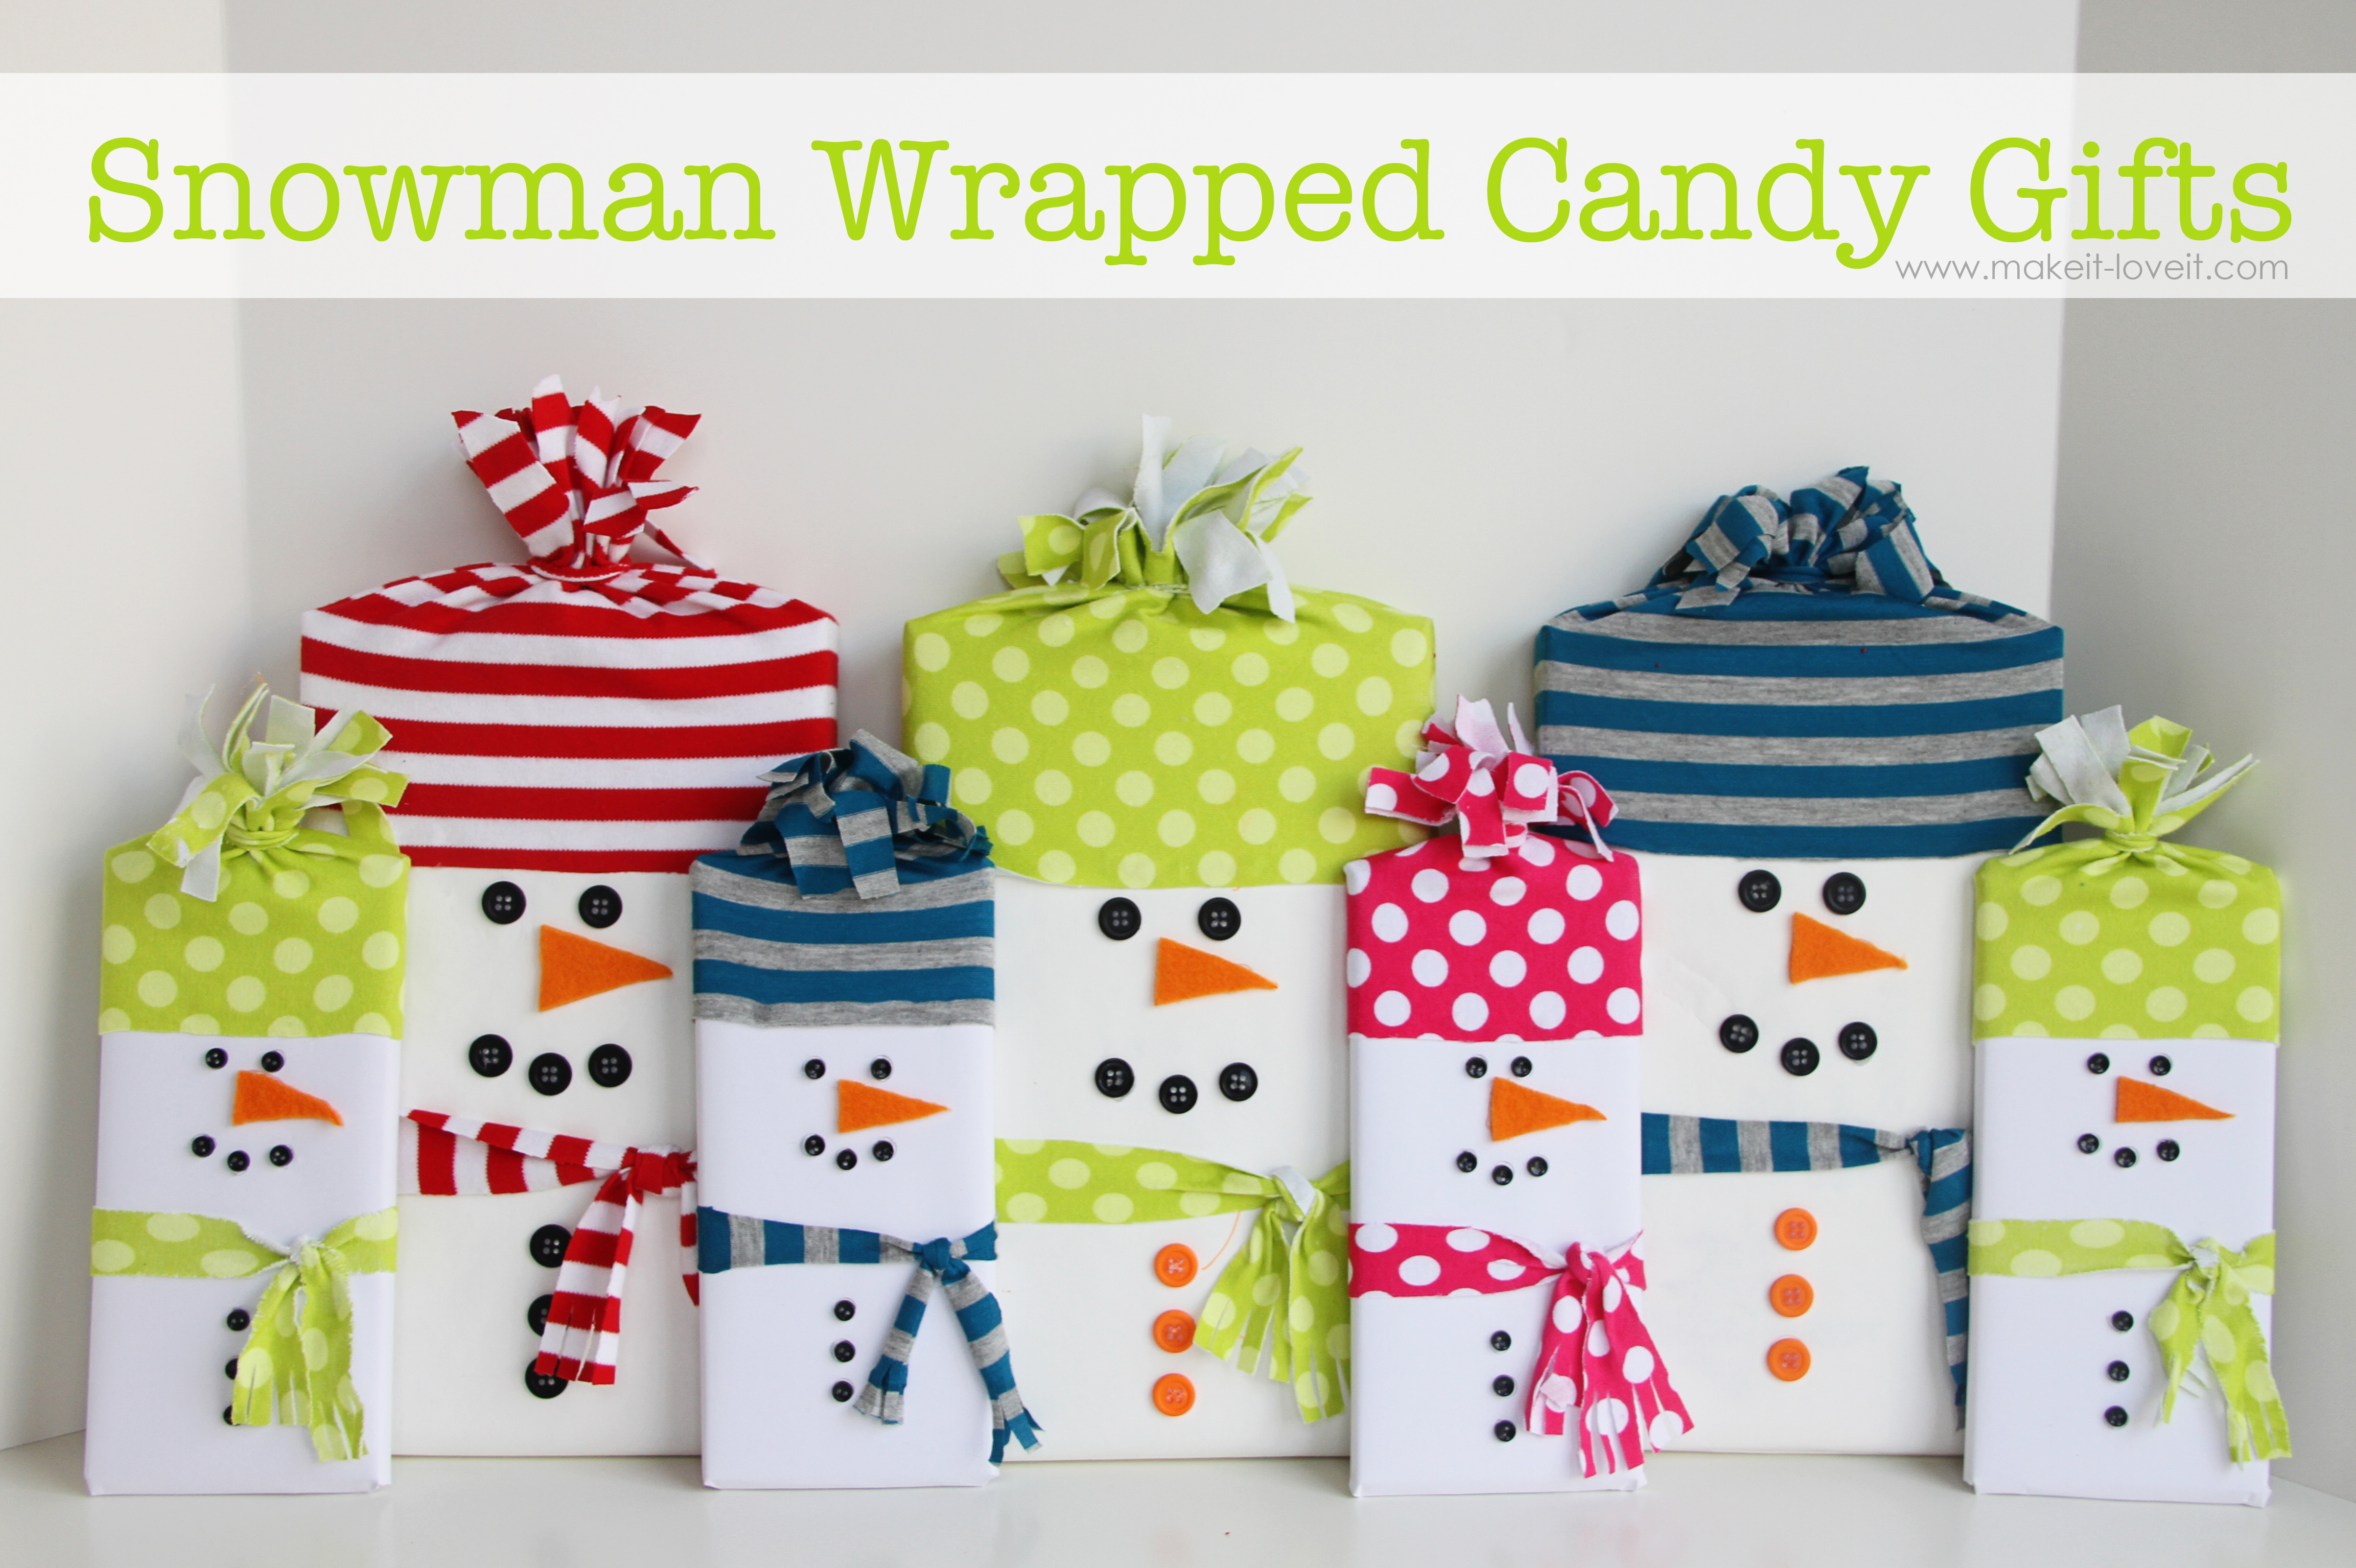 Wrapped Christmas Candy  Snowman Wrapped Candy Gifts